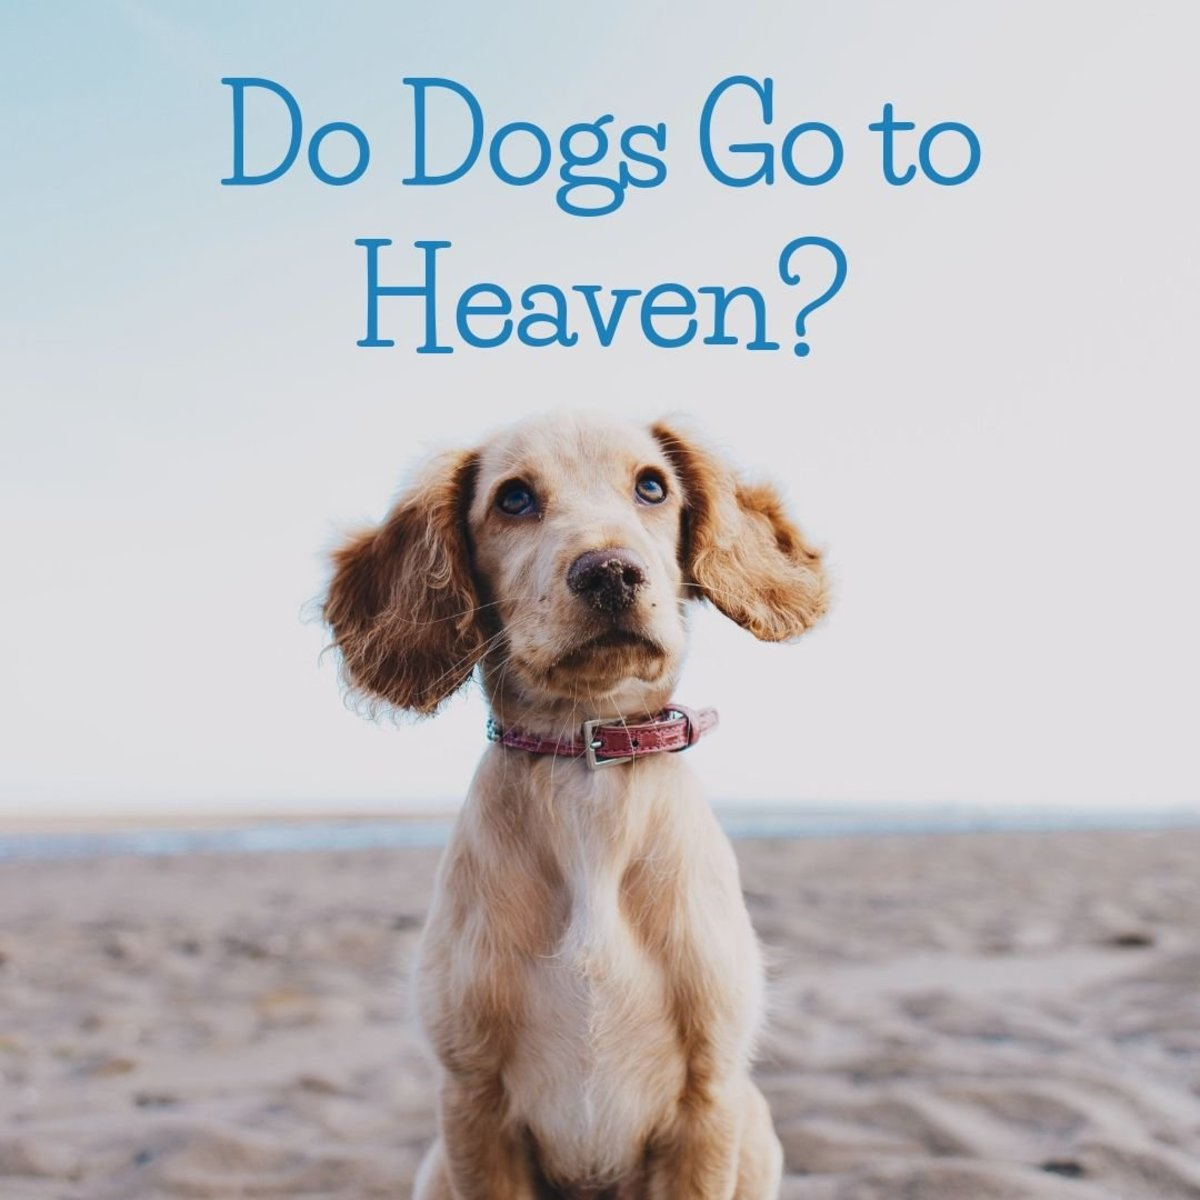 Do Dogs Go to Heaven? A Christian Perspective